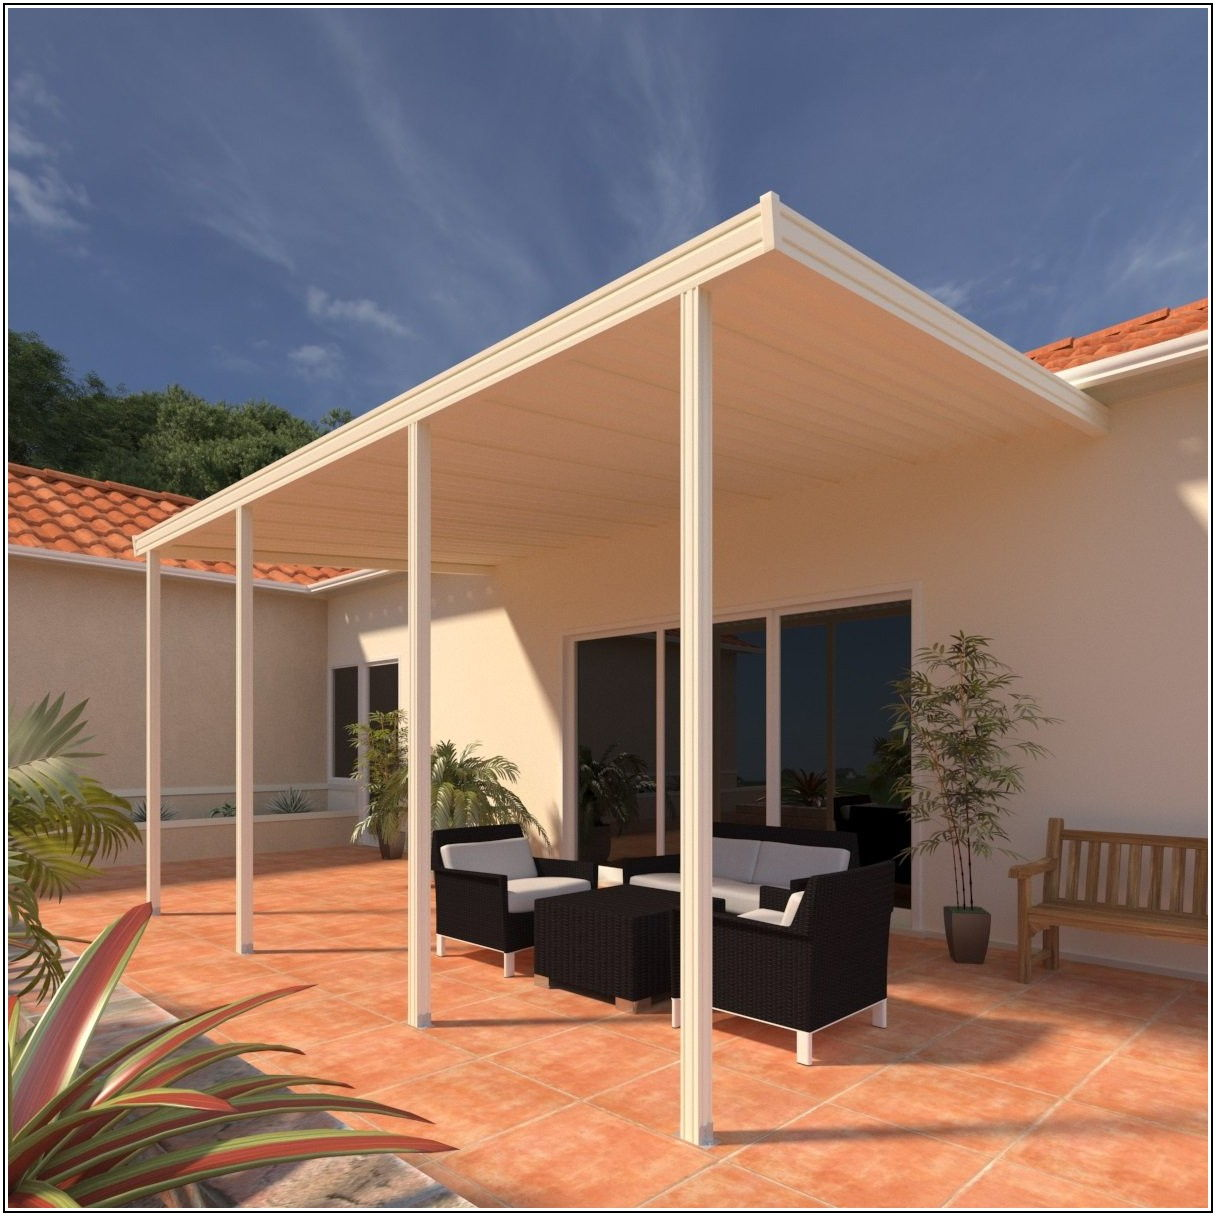 12 X 24 Aluminum Patio Cover